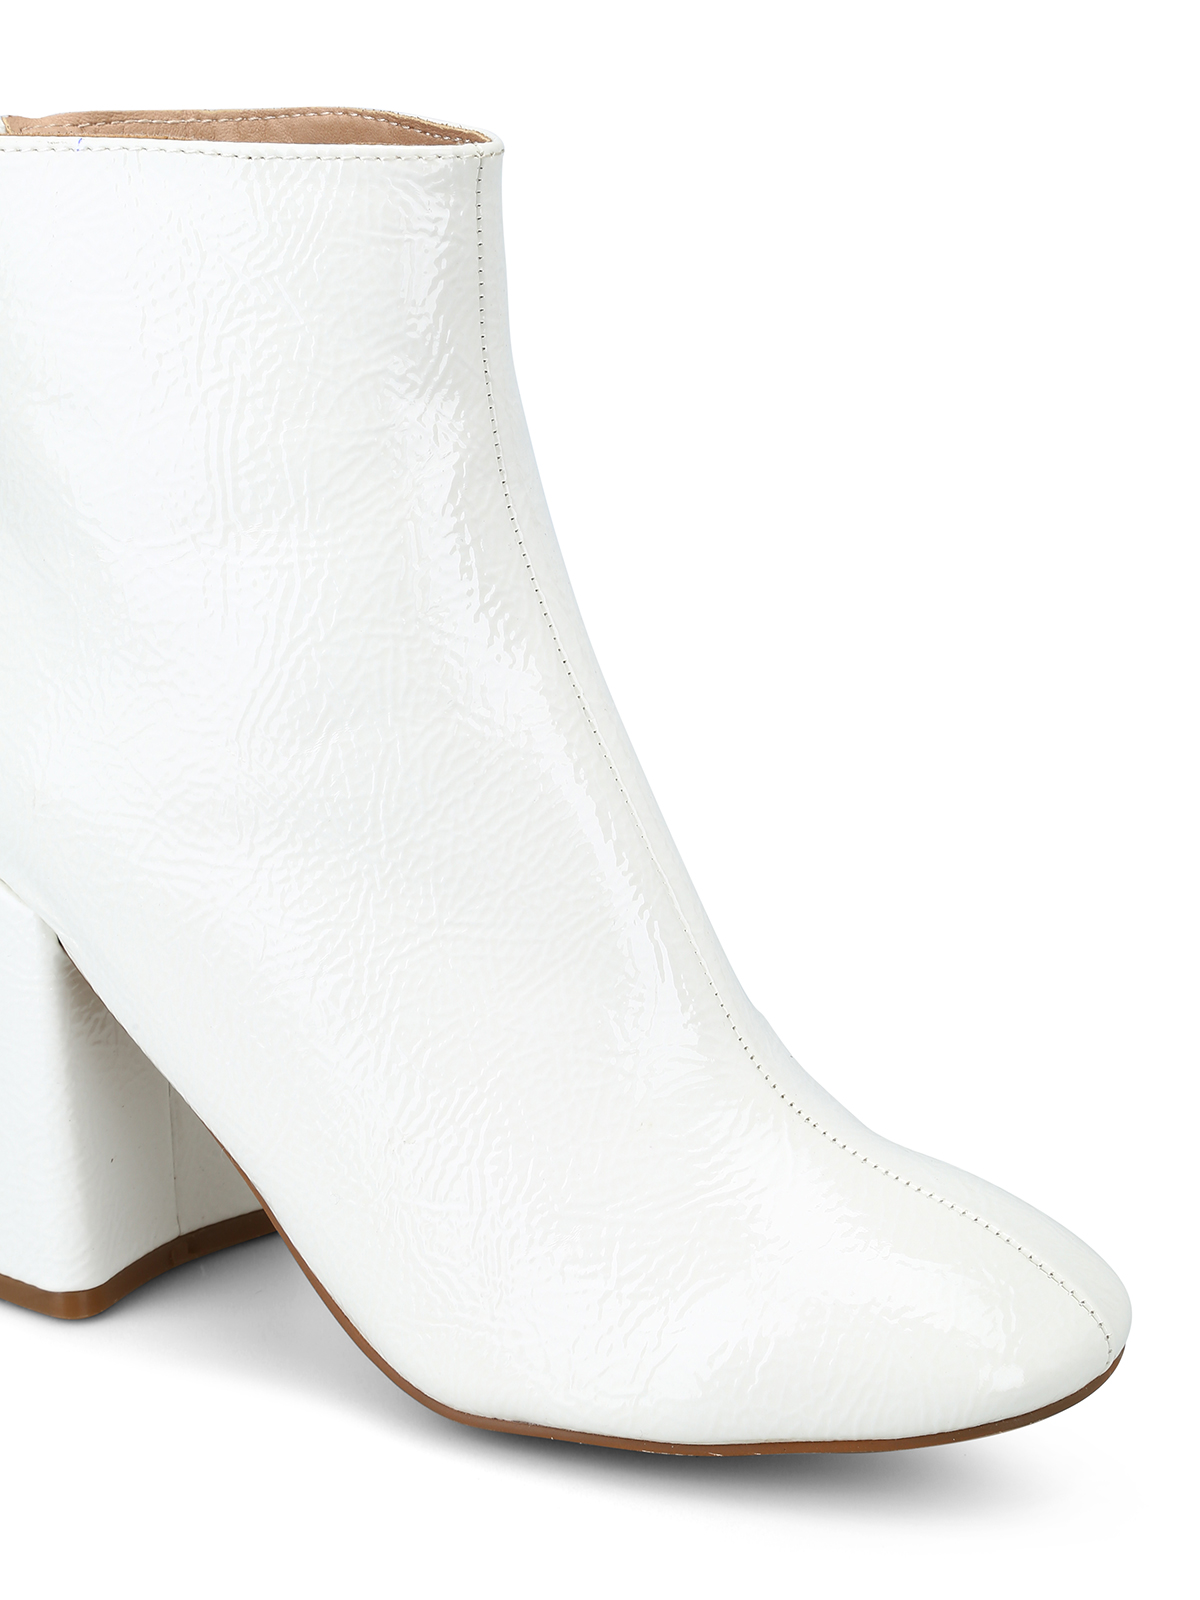 921997fcb81 iKRIX Steve Madden  ankle boots - Posed white faux patent ankle boots